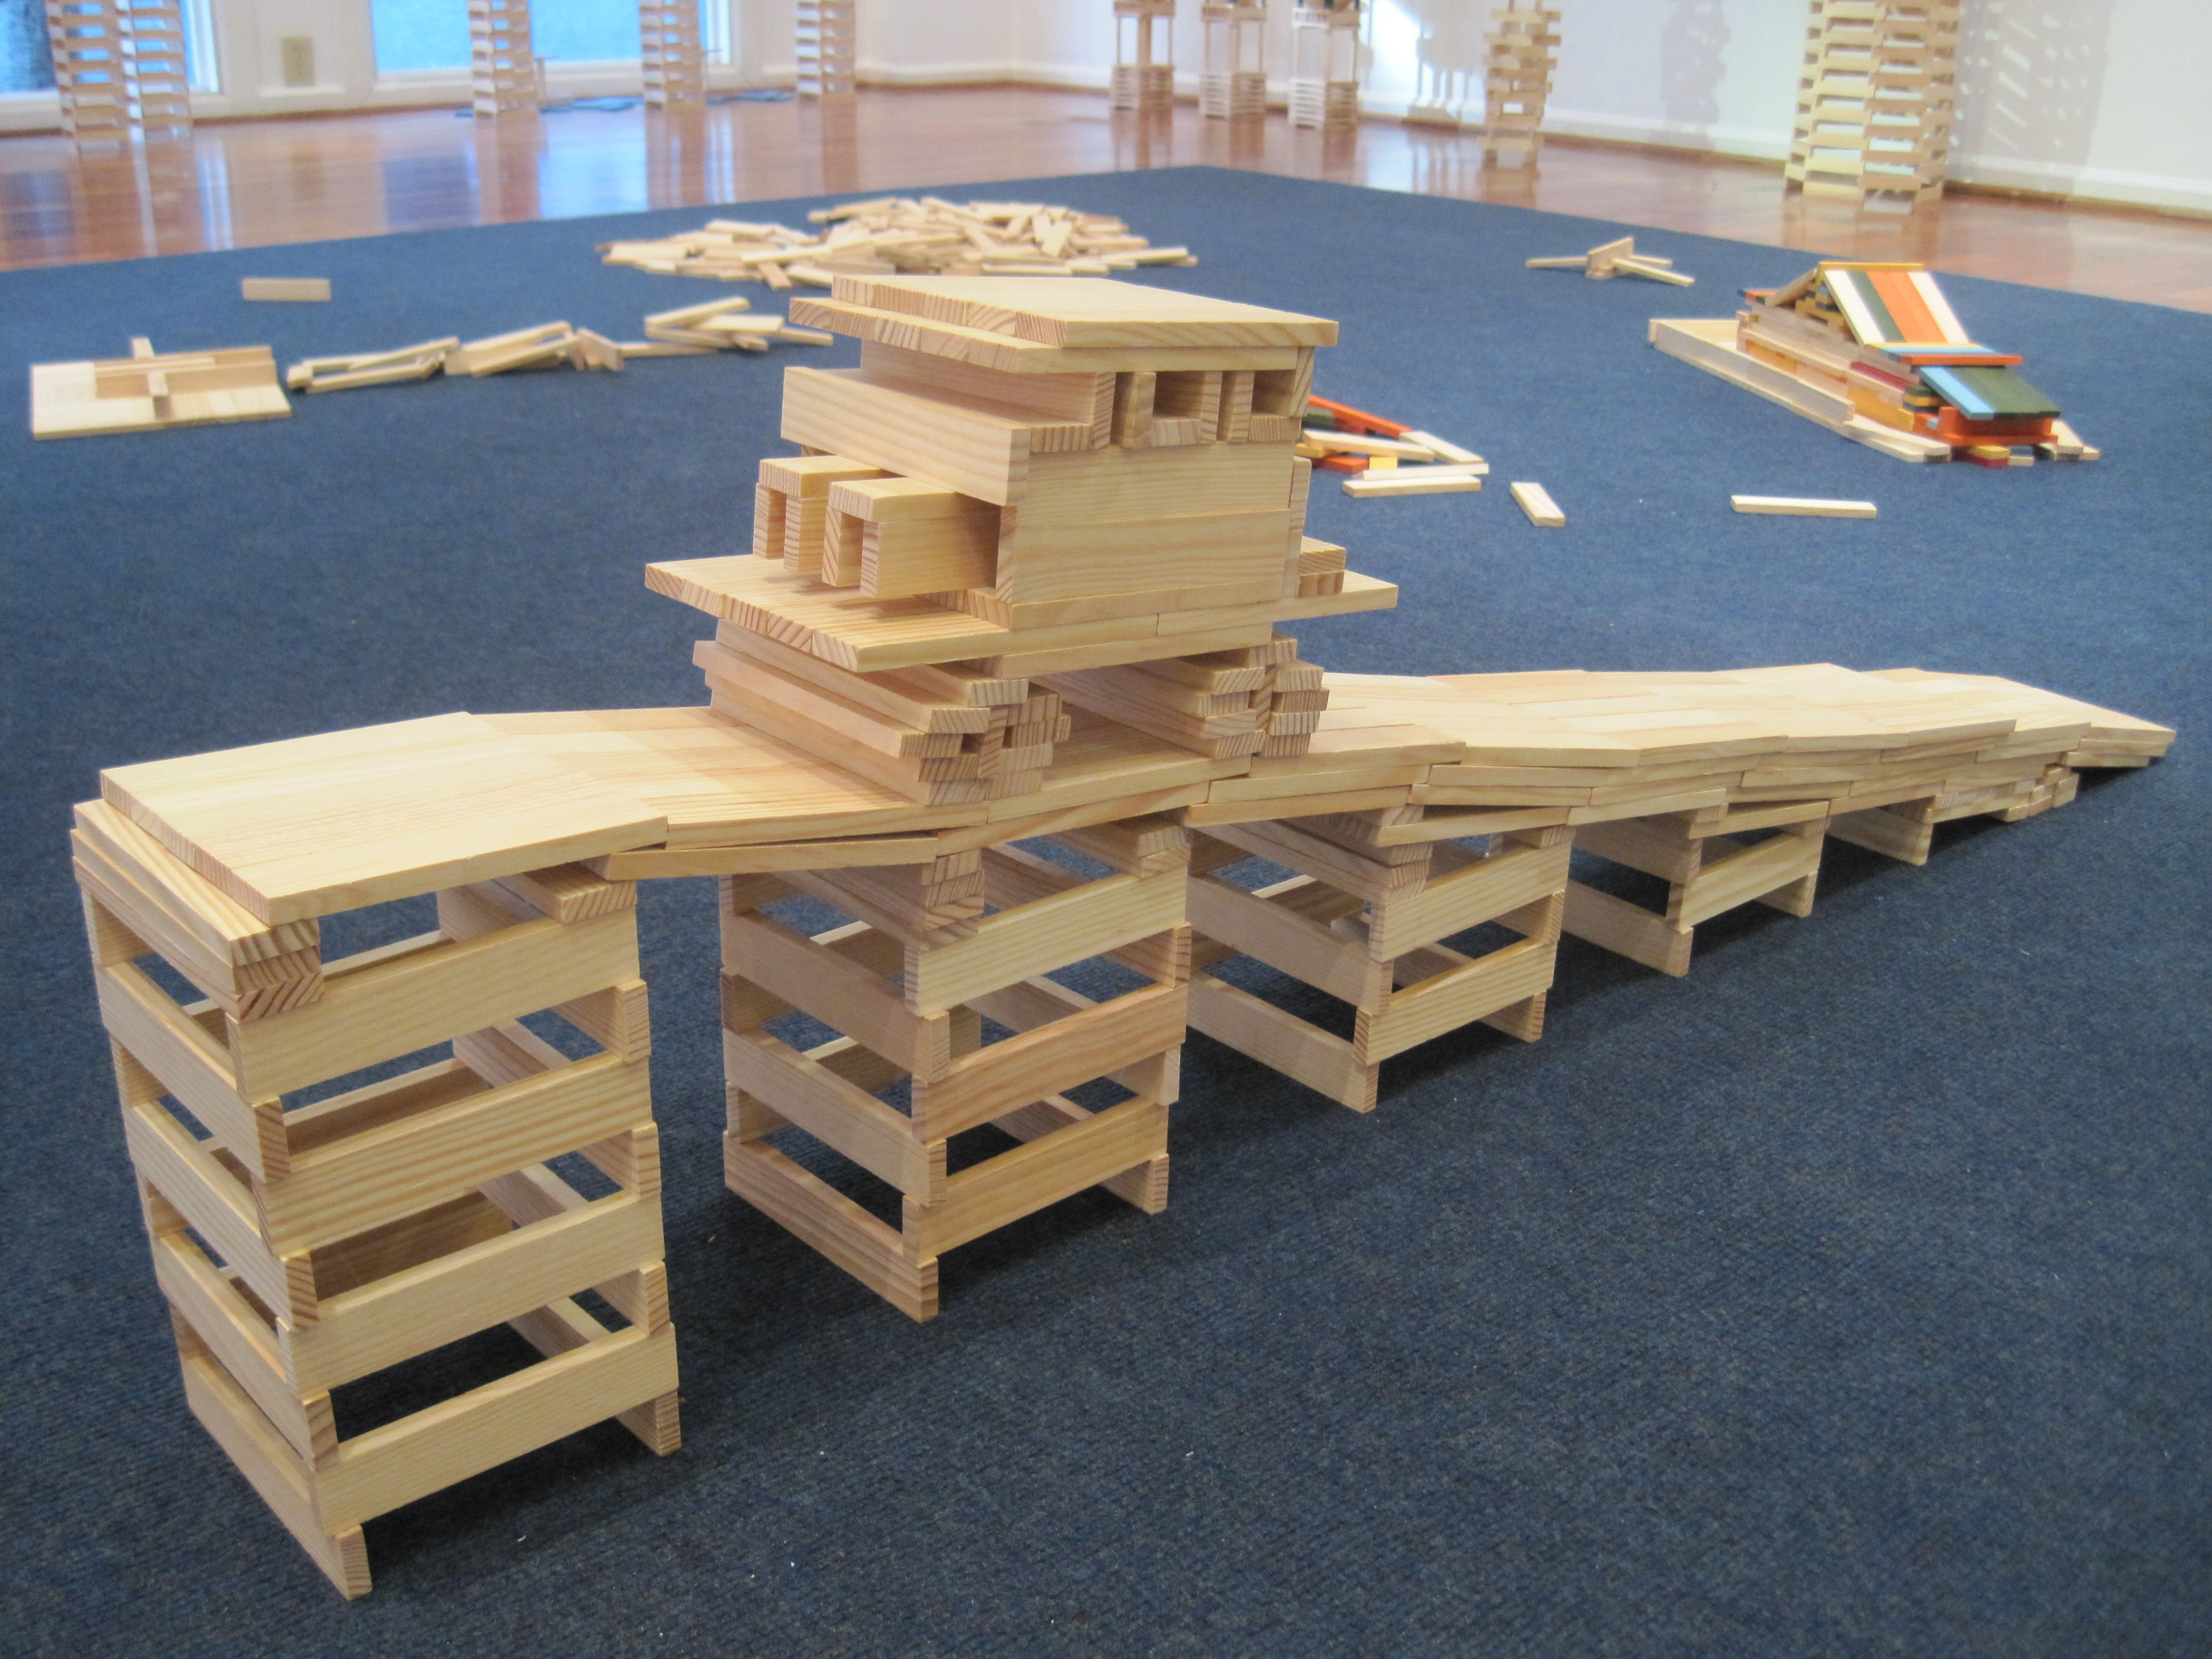 This KAPLA bridge challenges young minds This